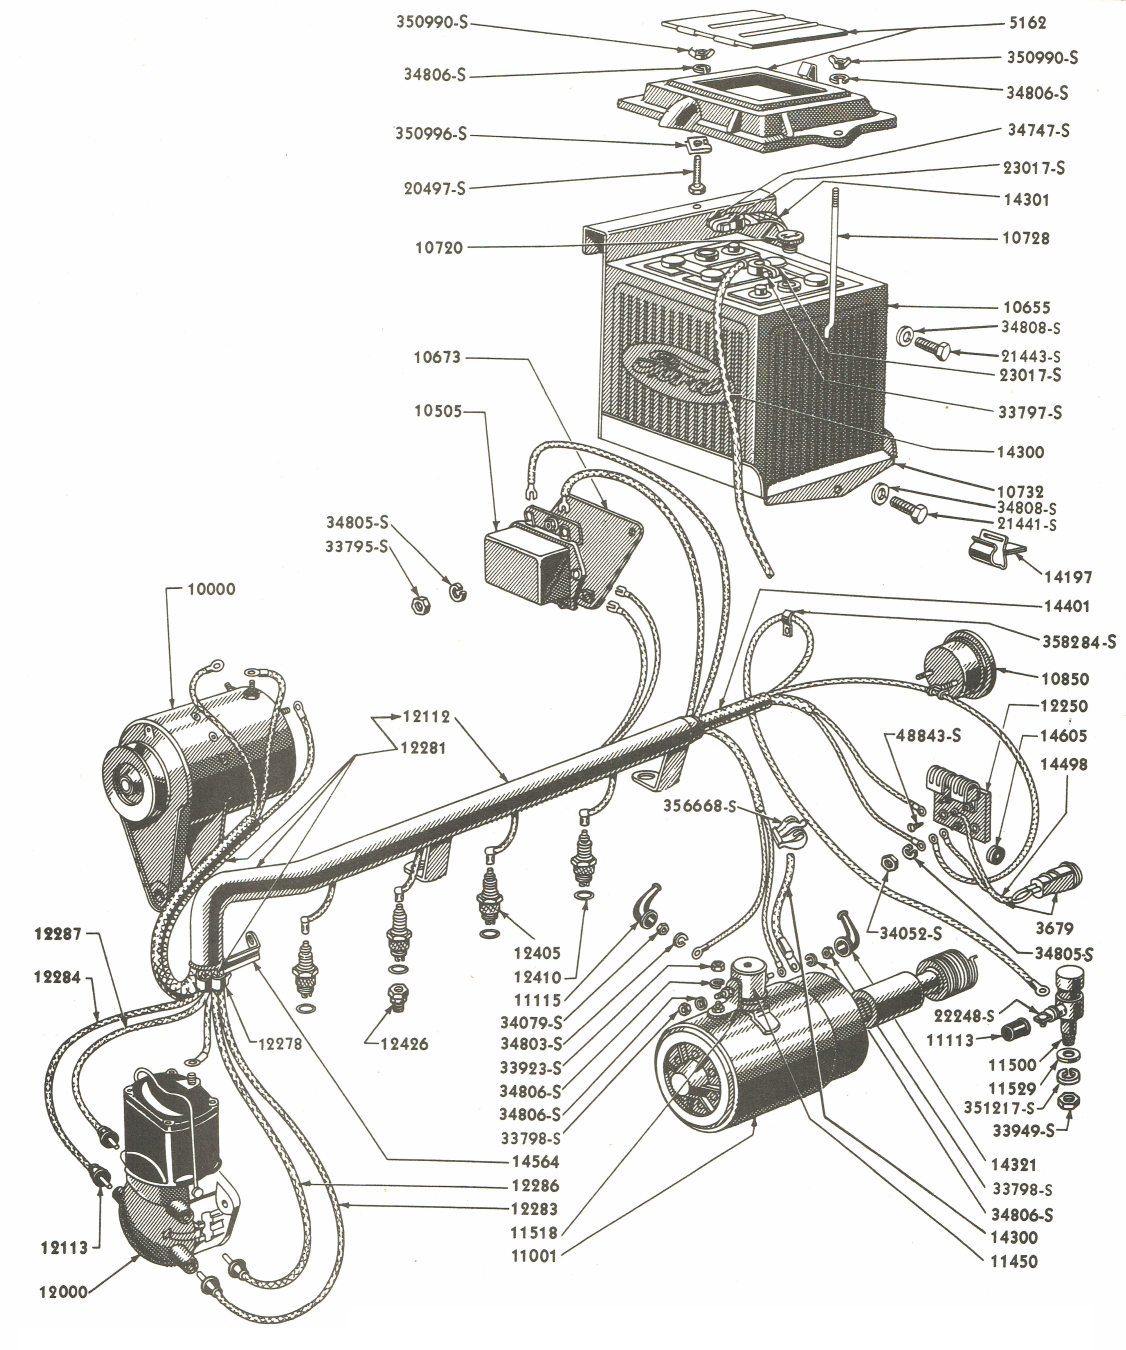 1953 Ford Jubilee Tractor Wiring Diagram from www.fixthatford.com